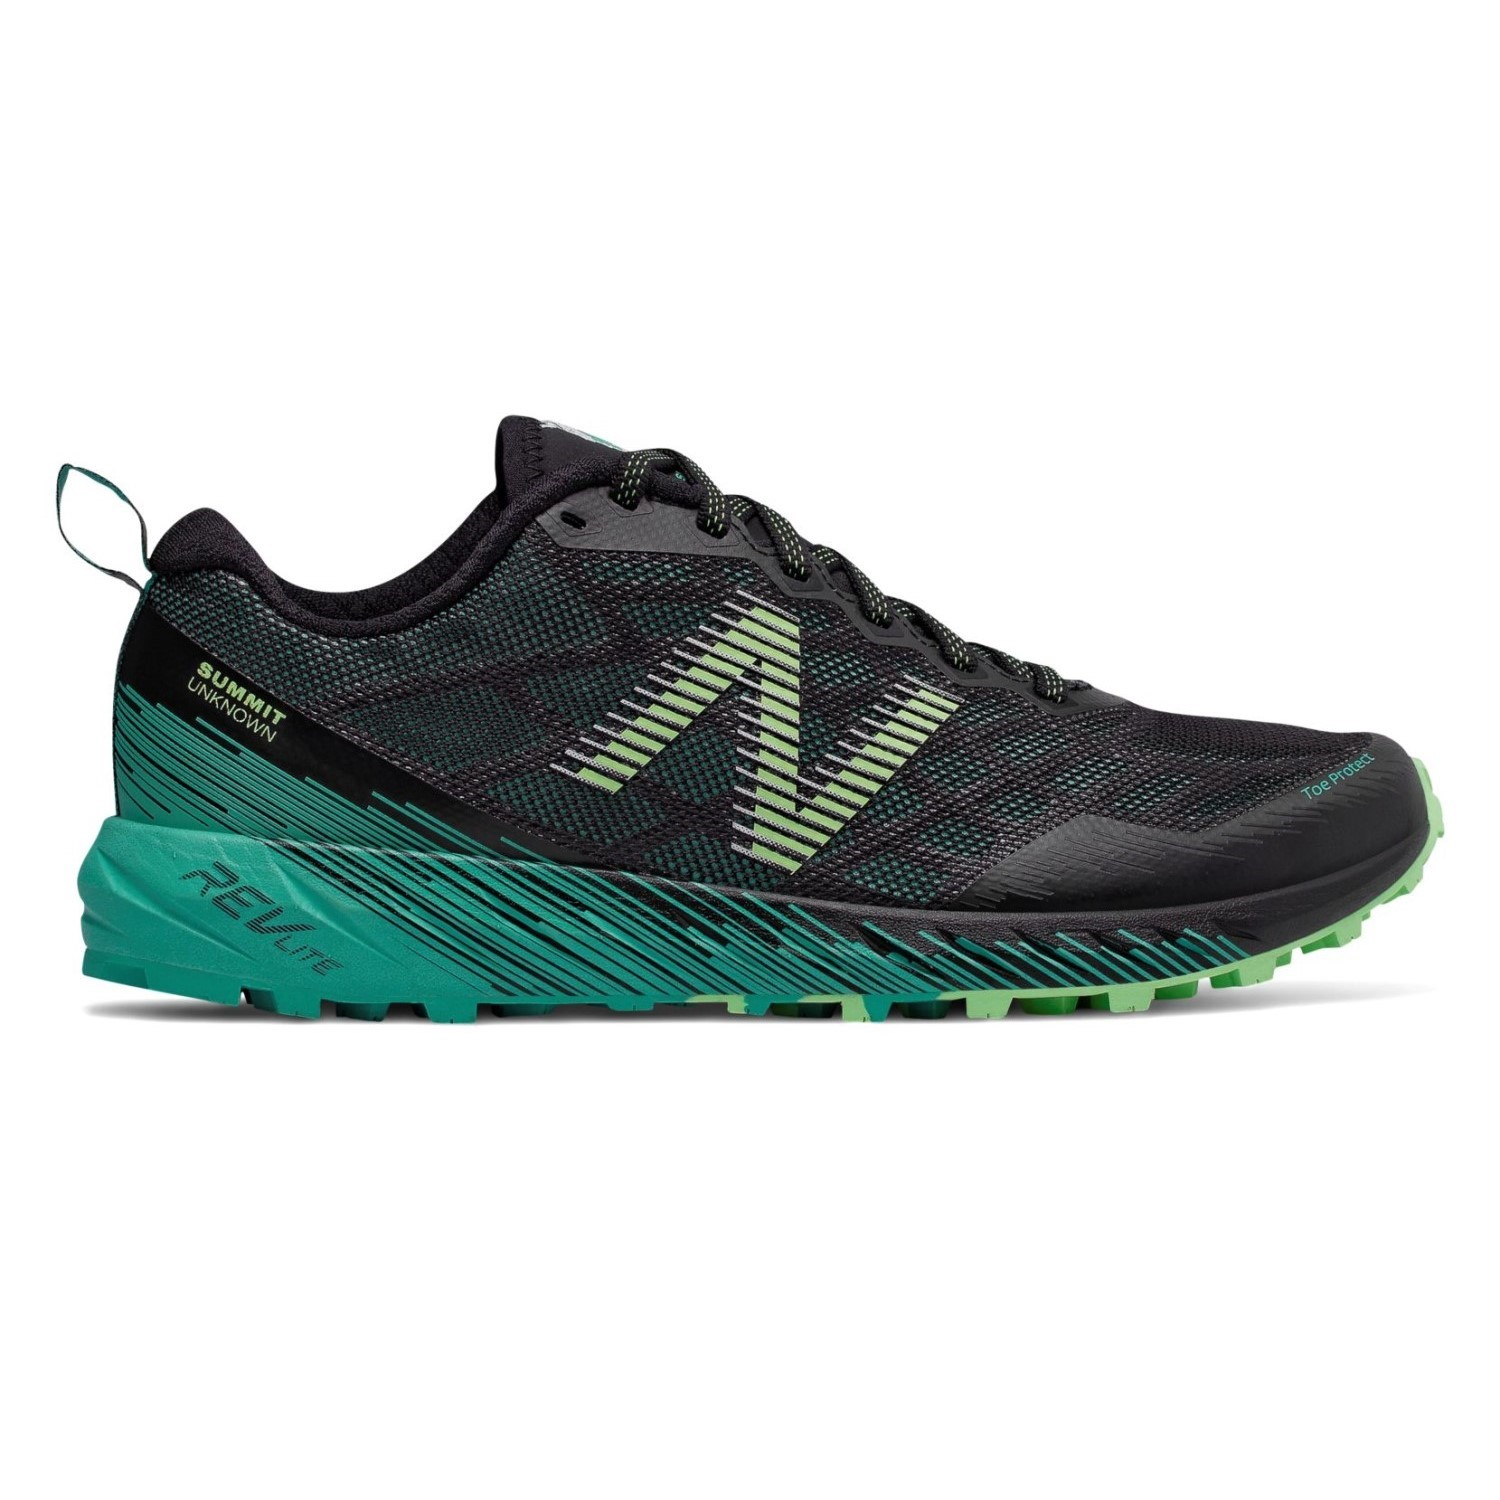 New Balance Summit Unknown - Womens Trail Running Shoes - Tidepool Black ae09c44346